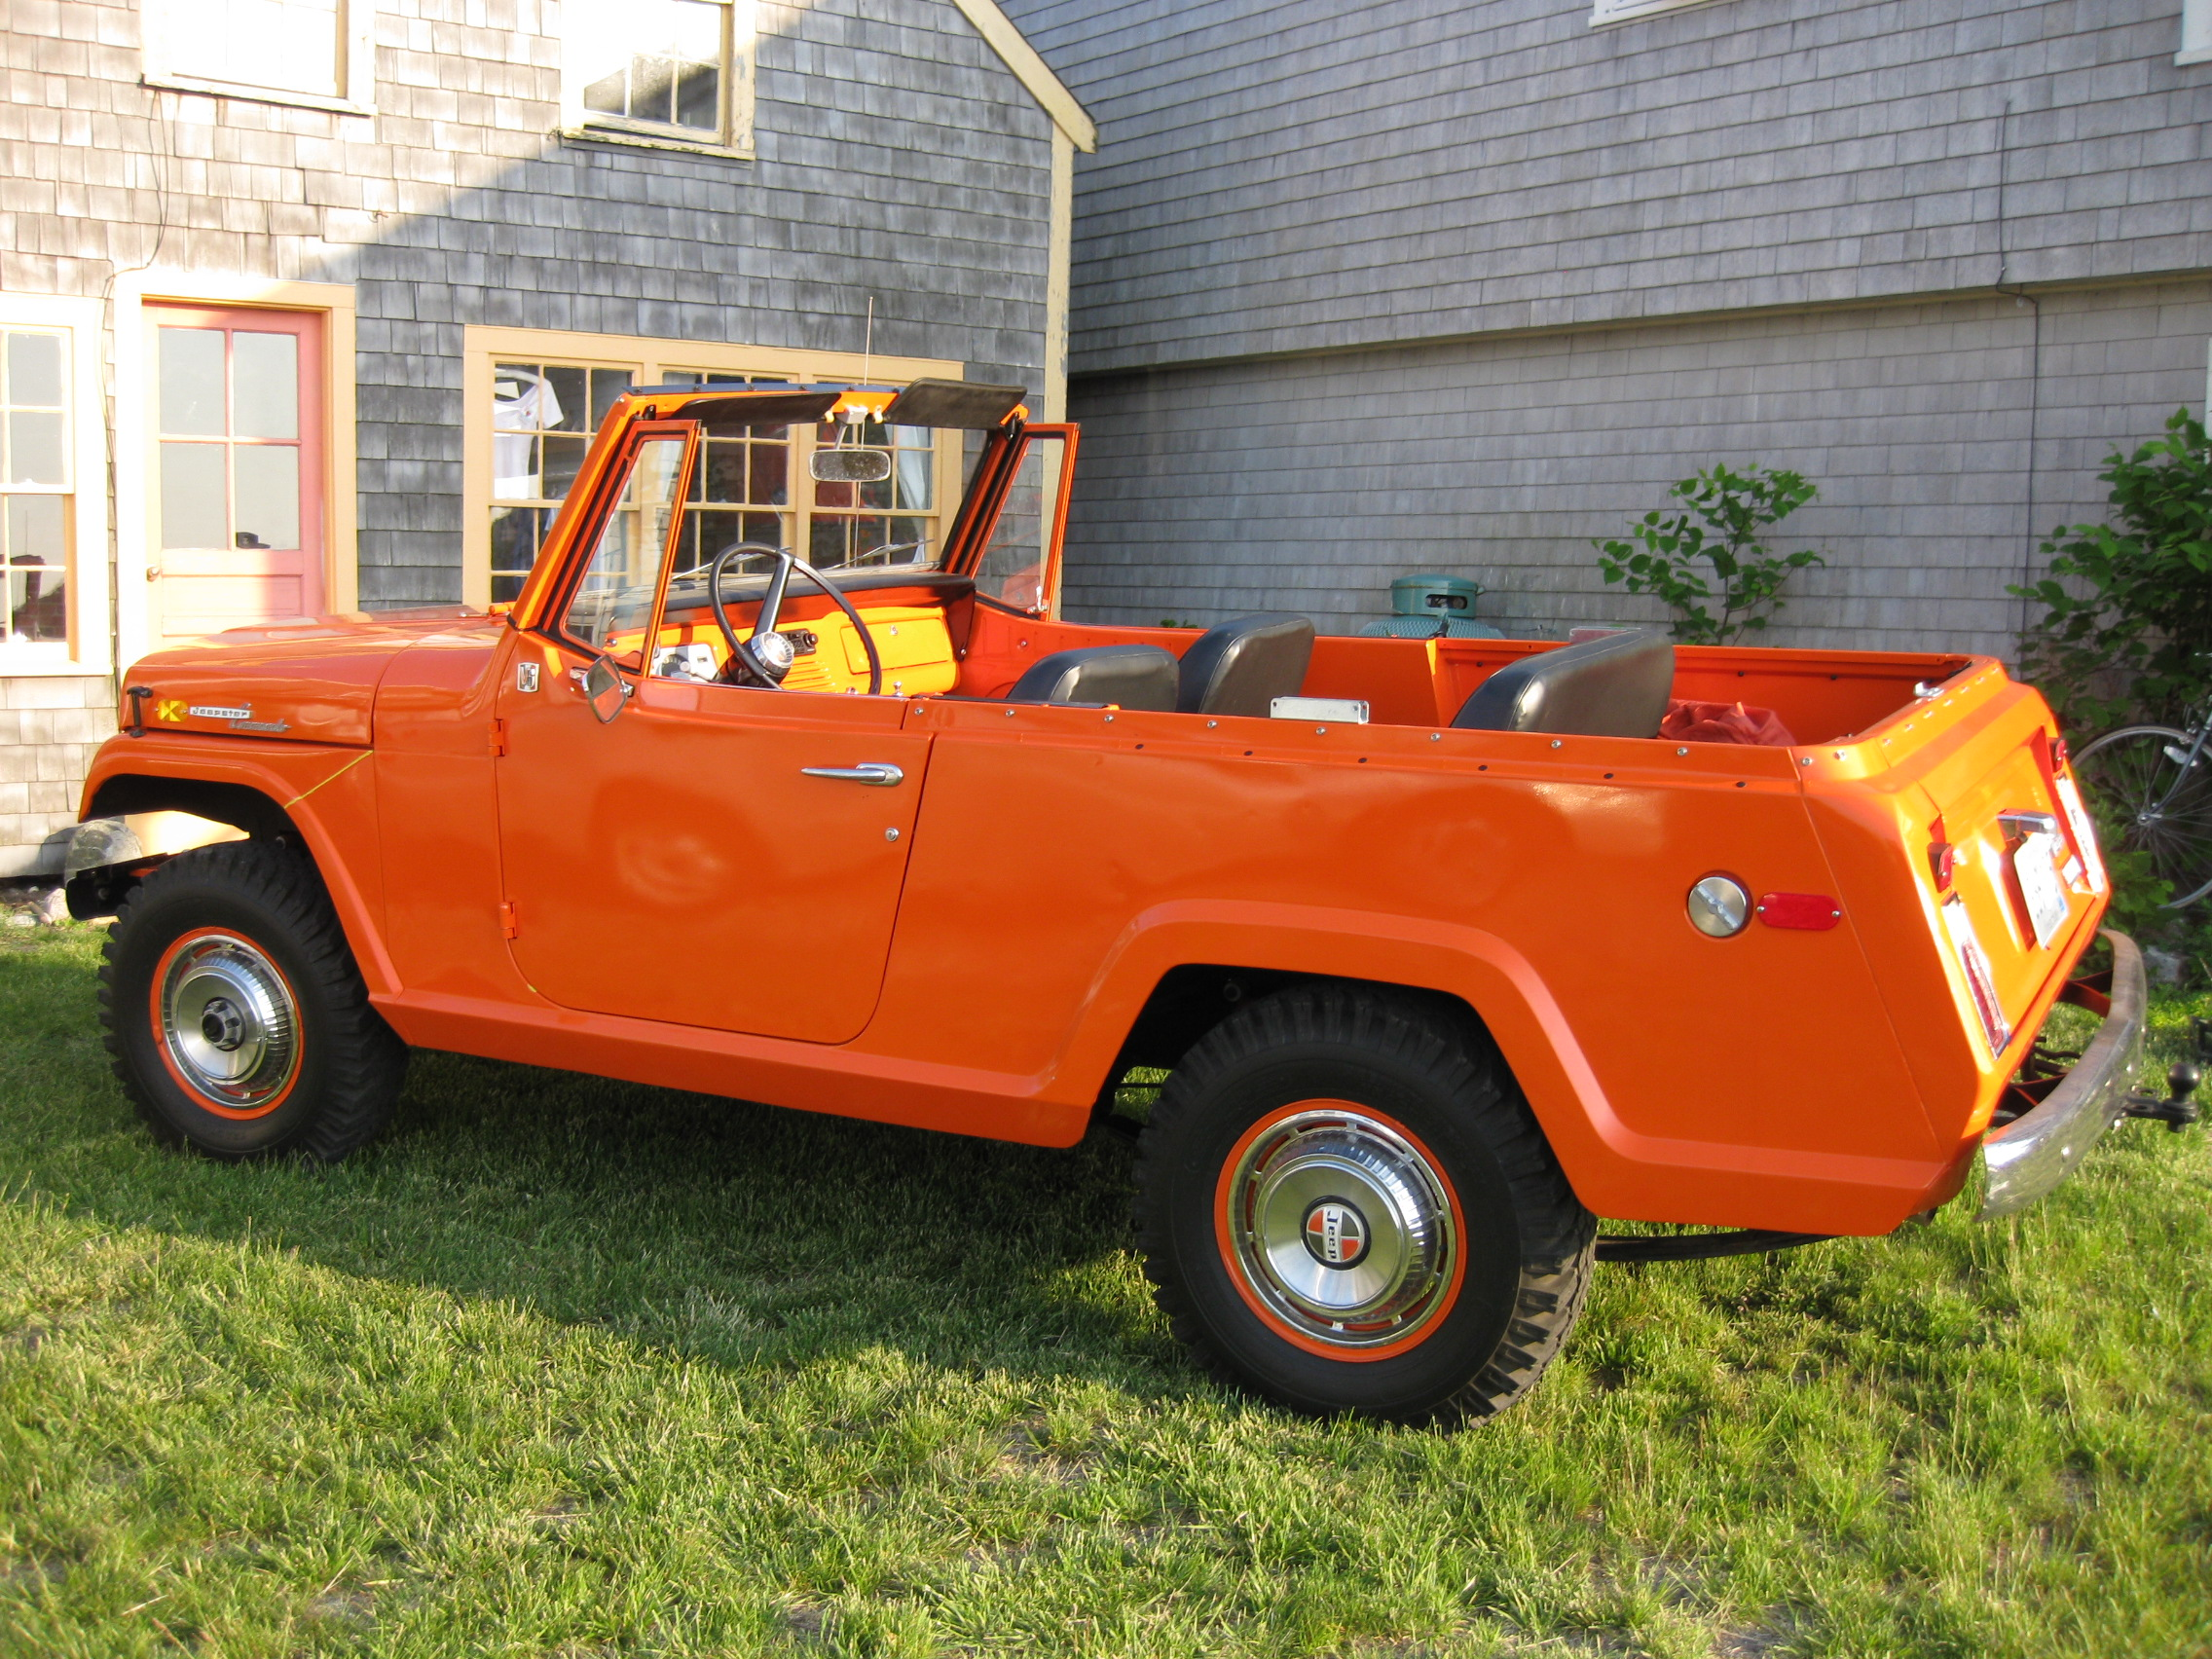 Kaiser Willys Wiring Diagram Not Lossing Jeep 1967 Jeepster Mando Renegade Cars Wagon Hurricane